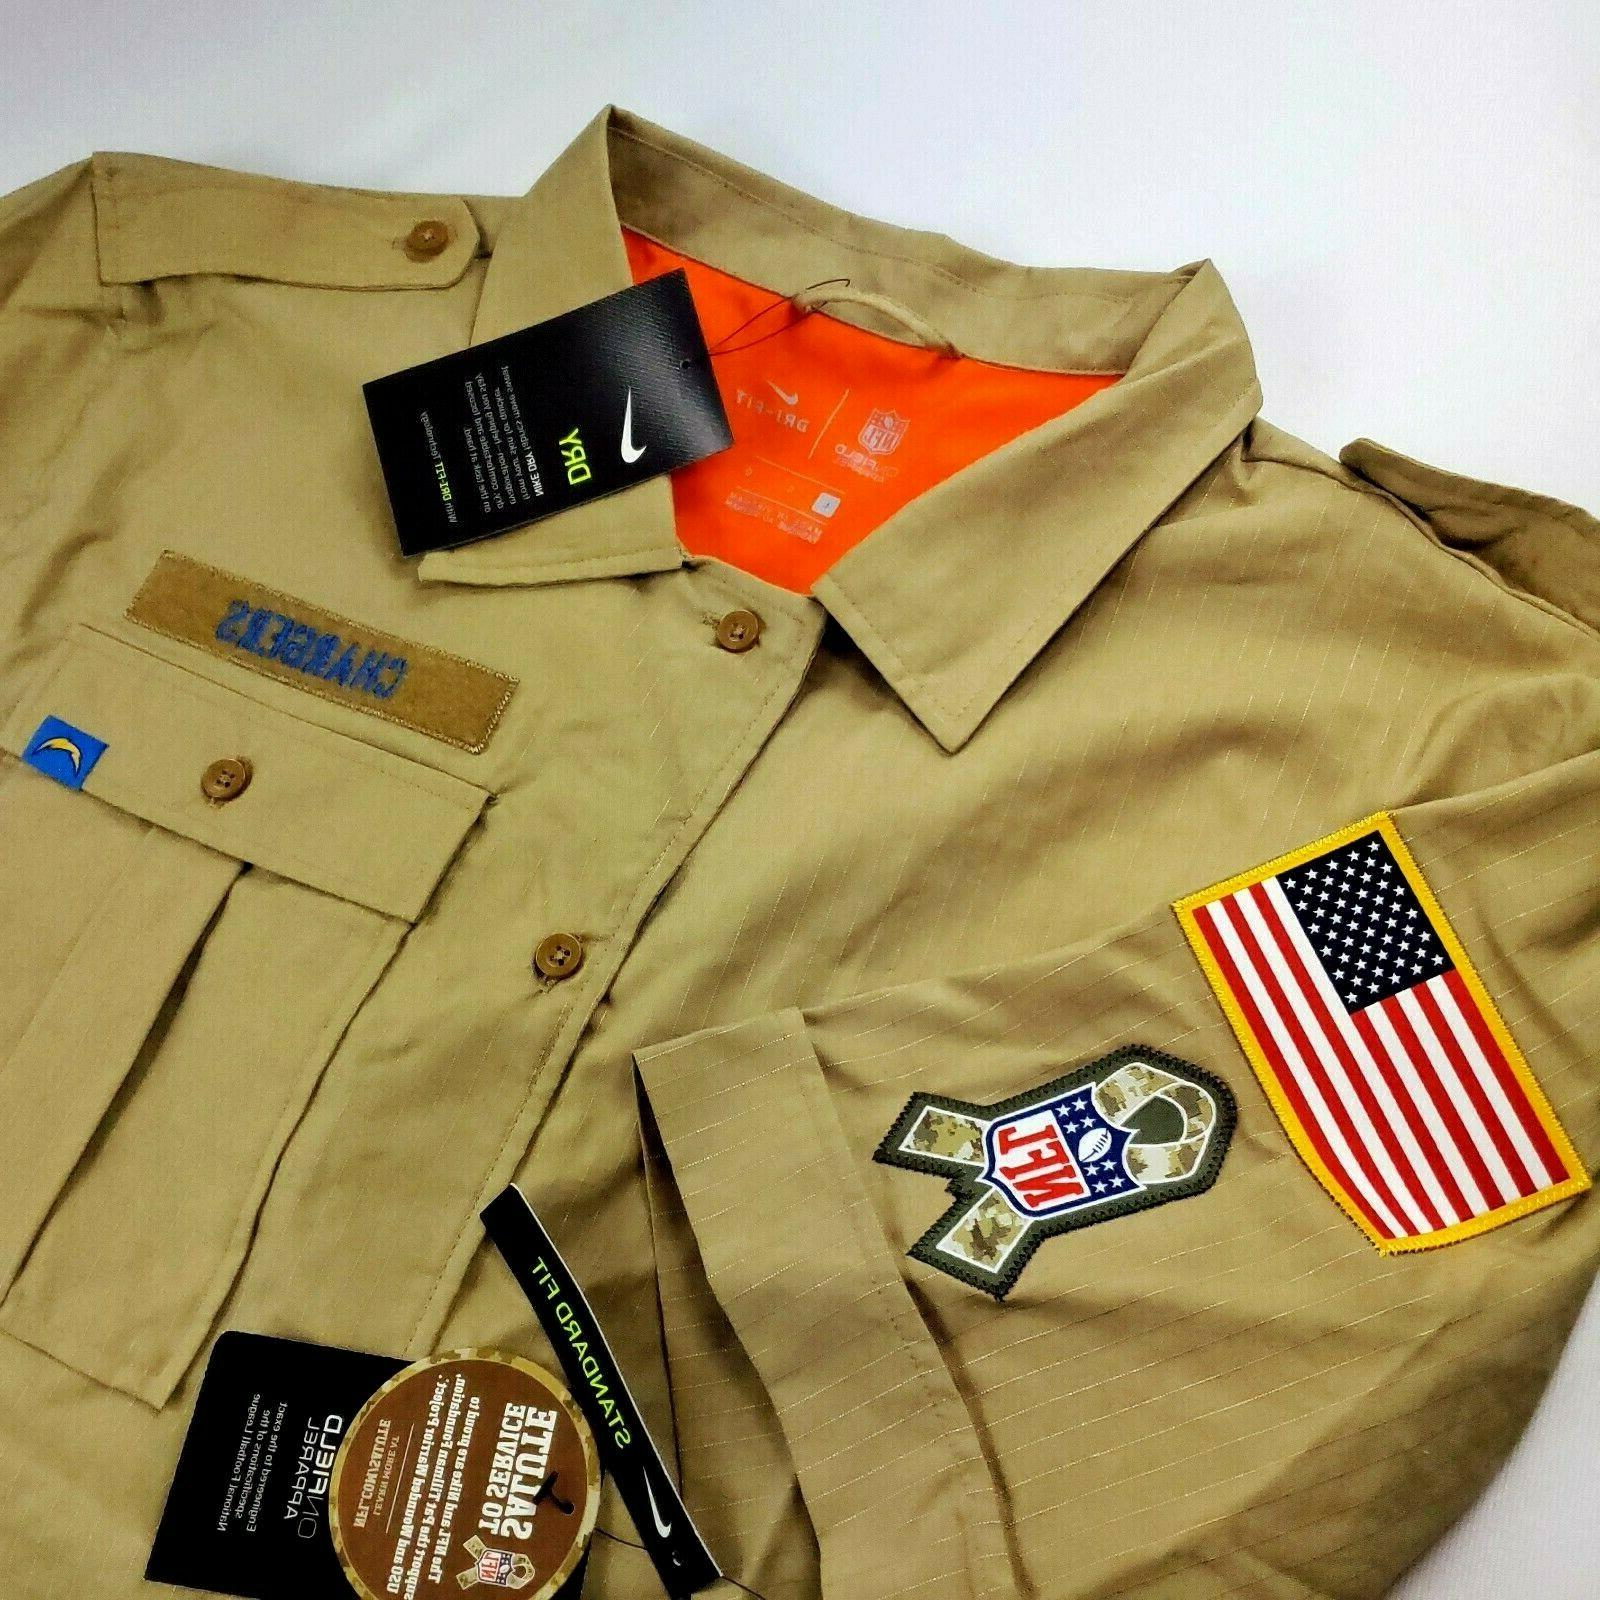 onfield apparel salute service los angeles chargers